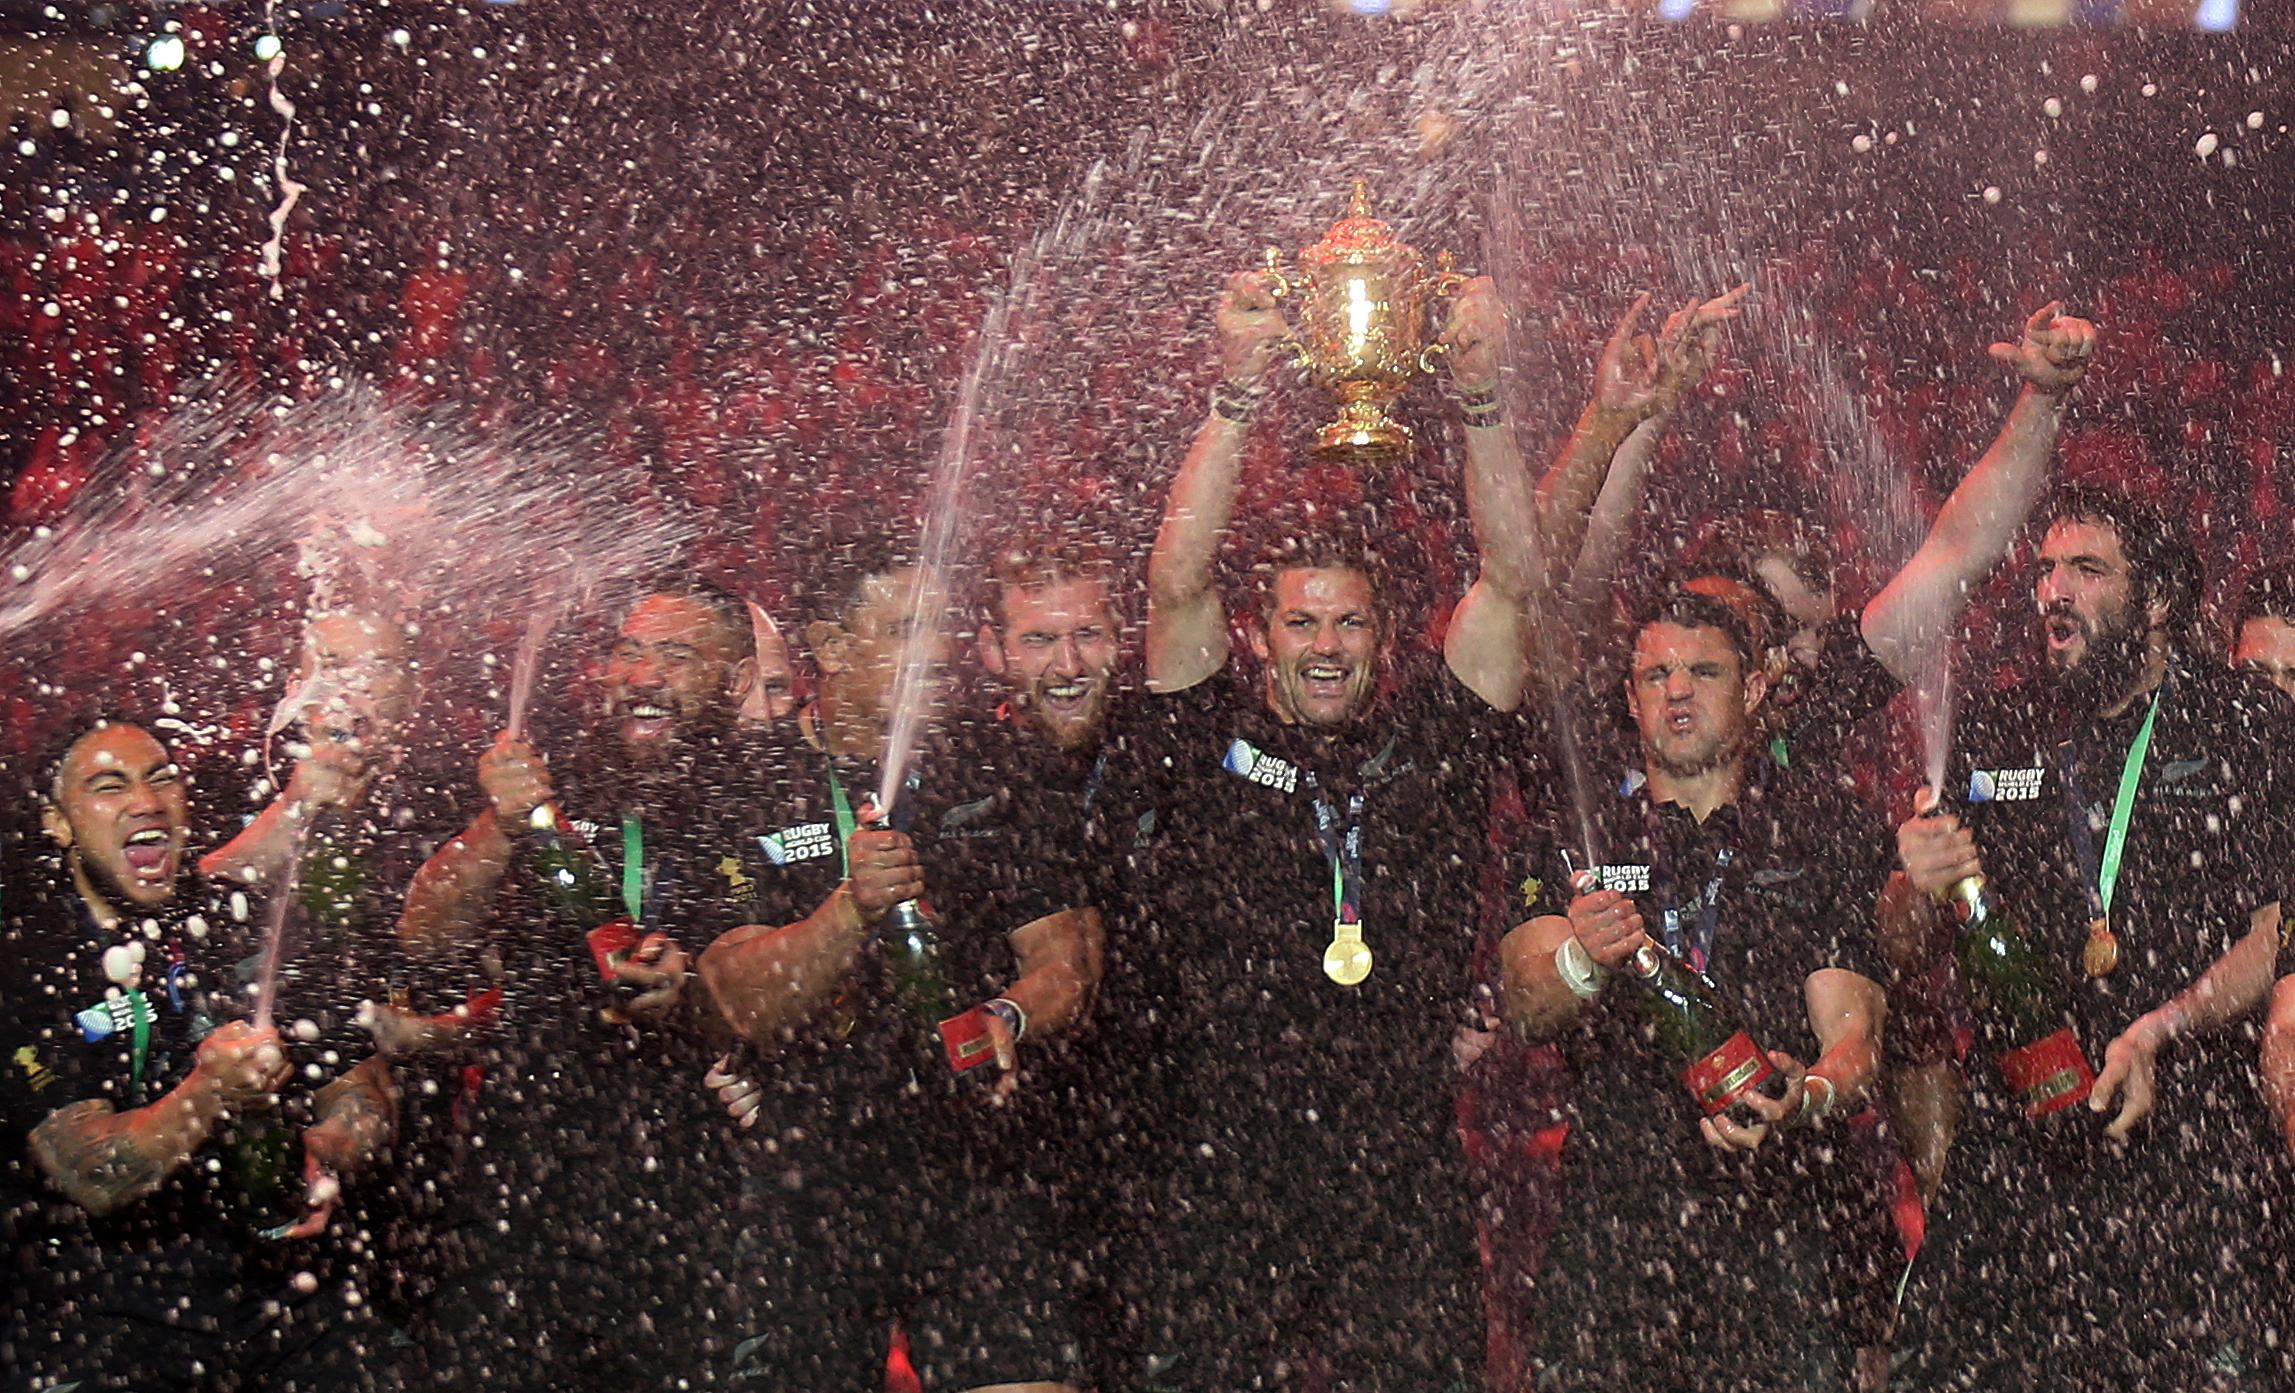 England hosted the 2015 World Cup with the All Blacks lifting the Webb Ellis Trophy at Twickenham